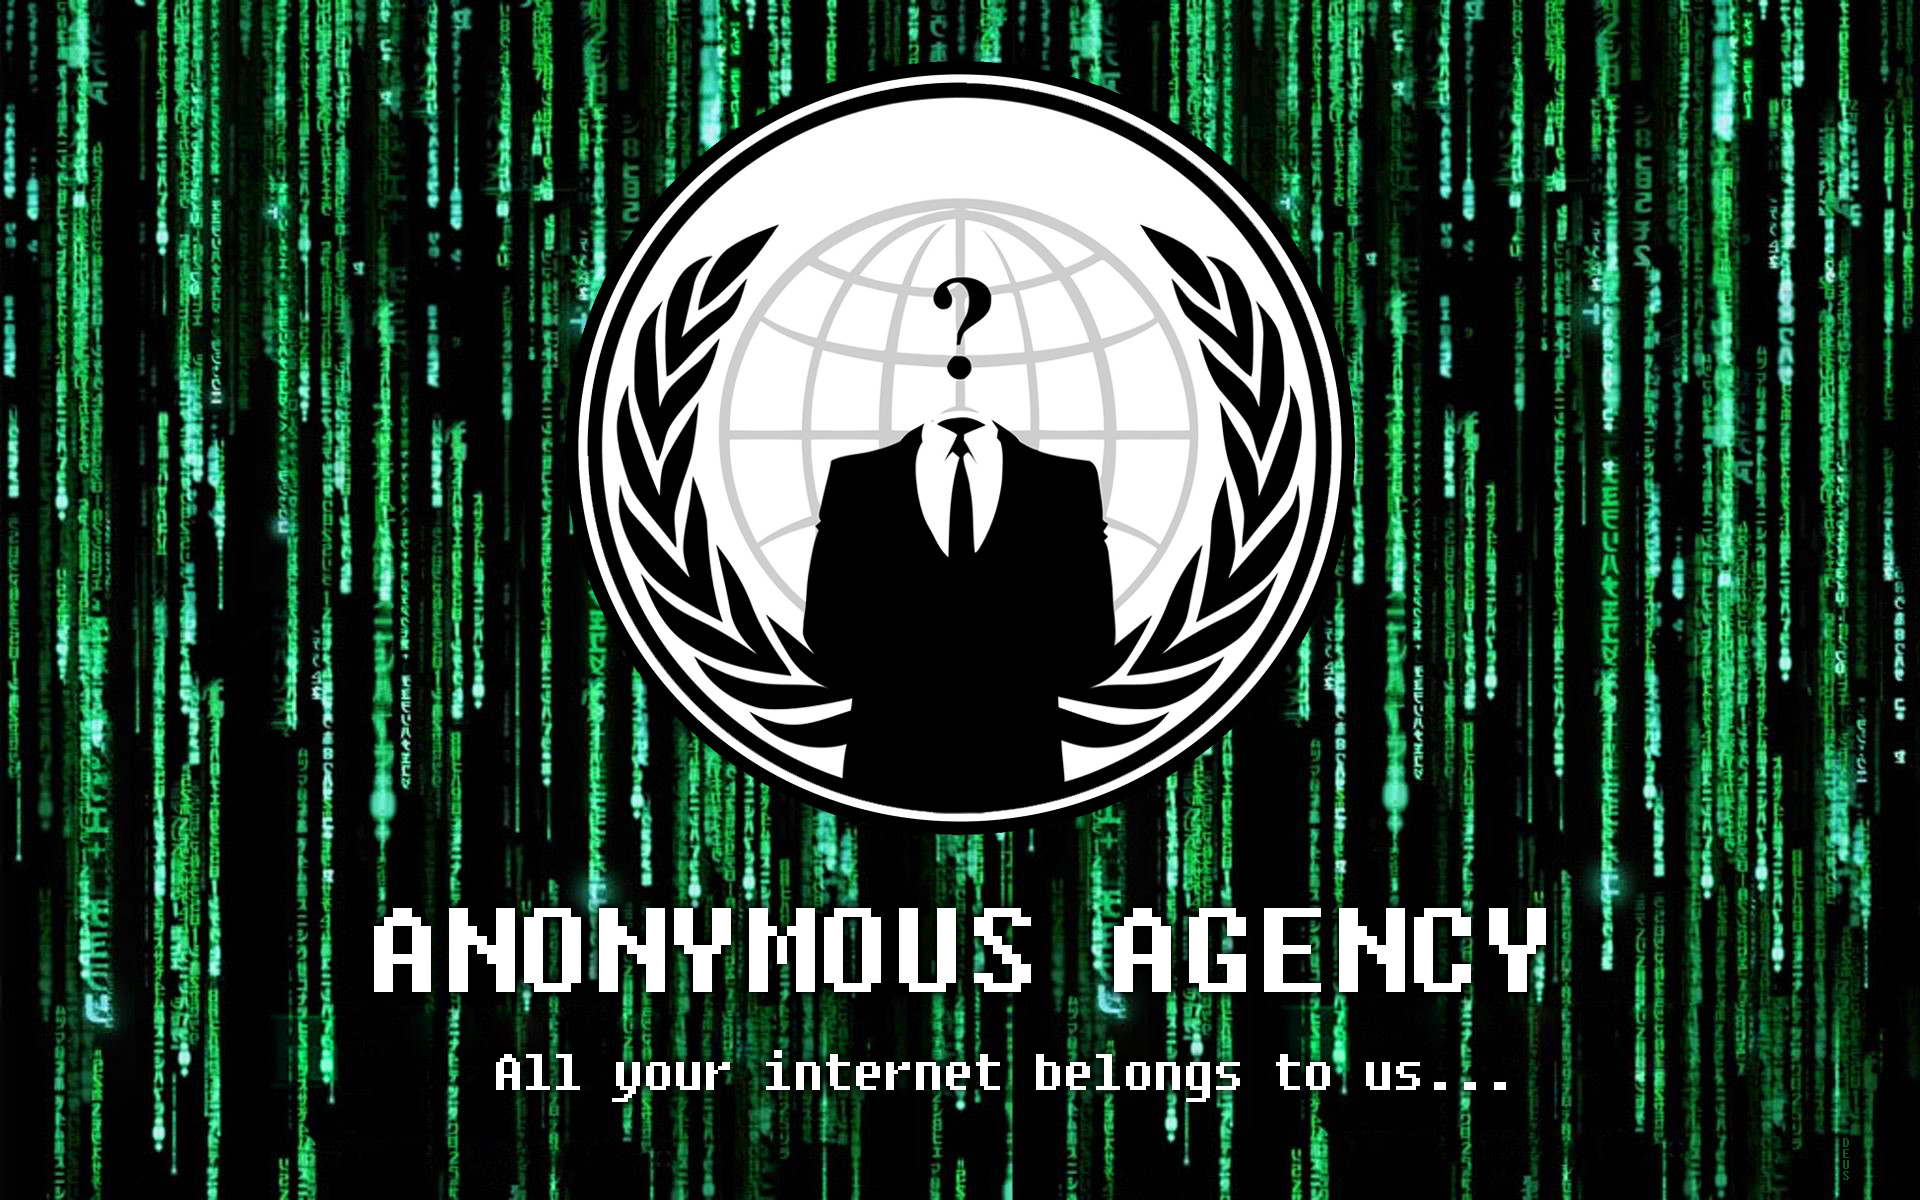 Die 81 besten anonymous wallpapers - Anonymous wallpaper full hd ...